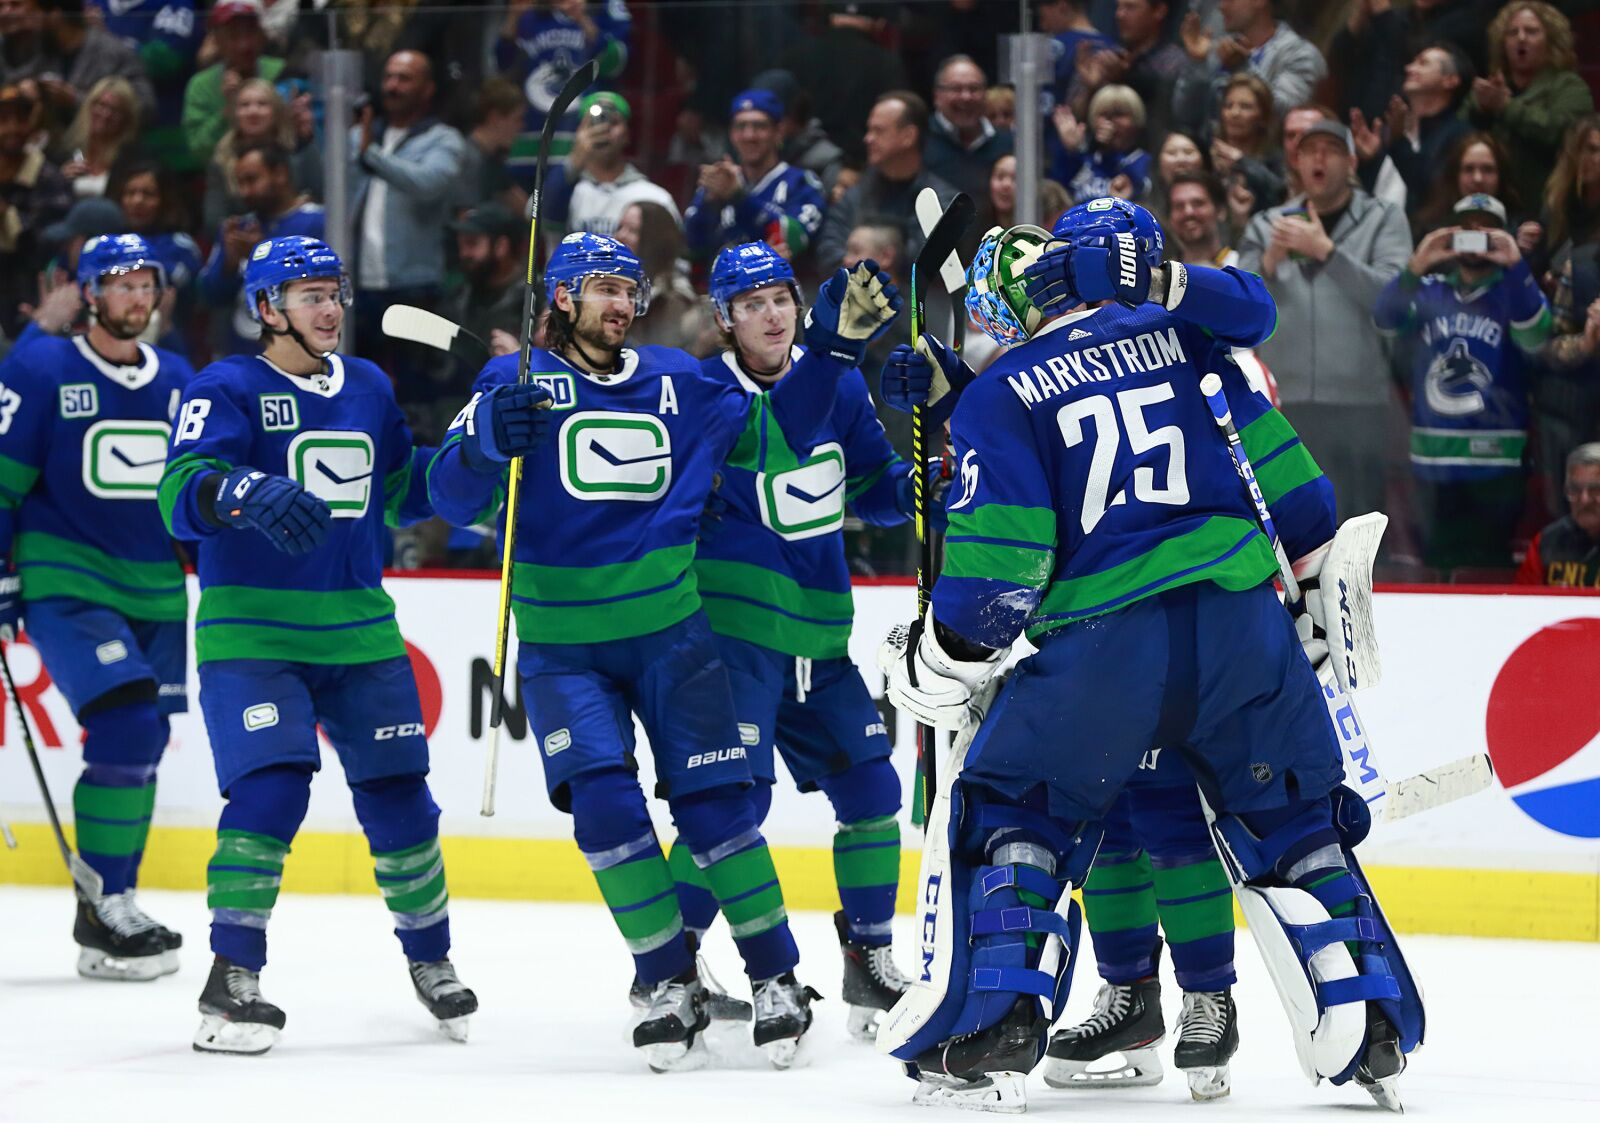 Full Vancouver Canucks alternate jersey game schedule